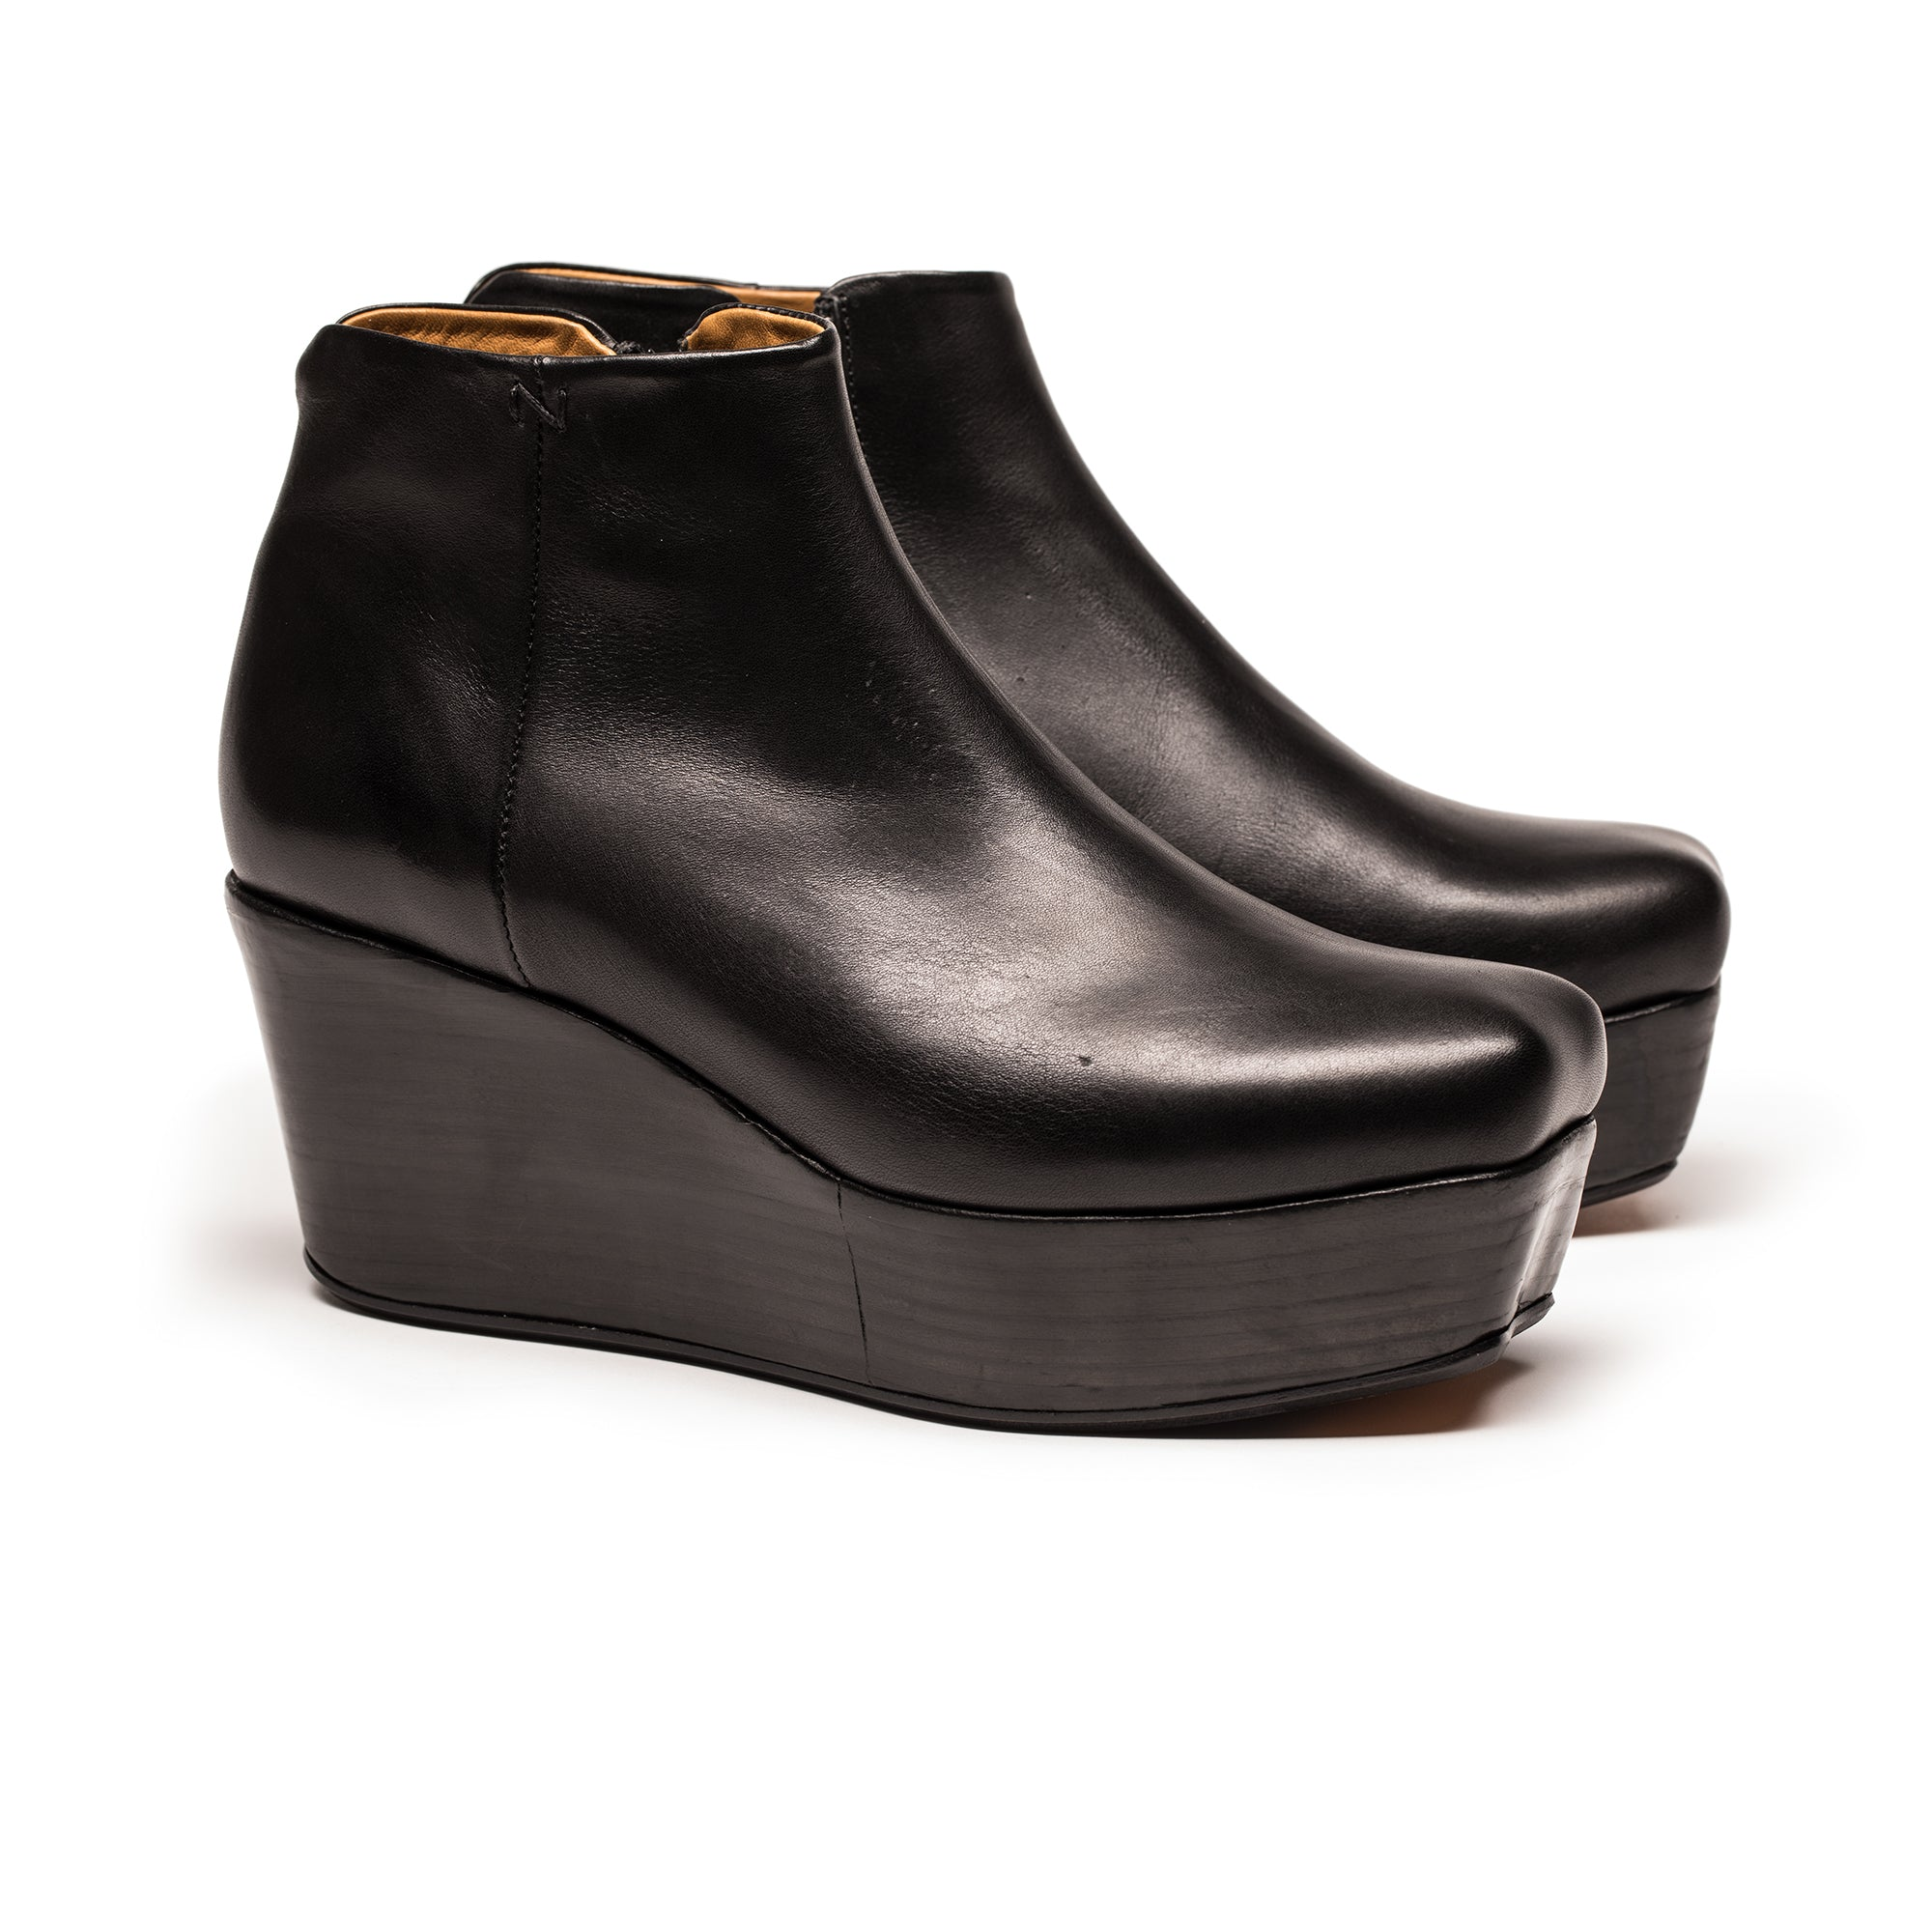 3c1d85be0ee ... A high platform wedge ankle boots in black